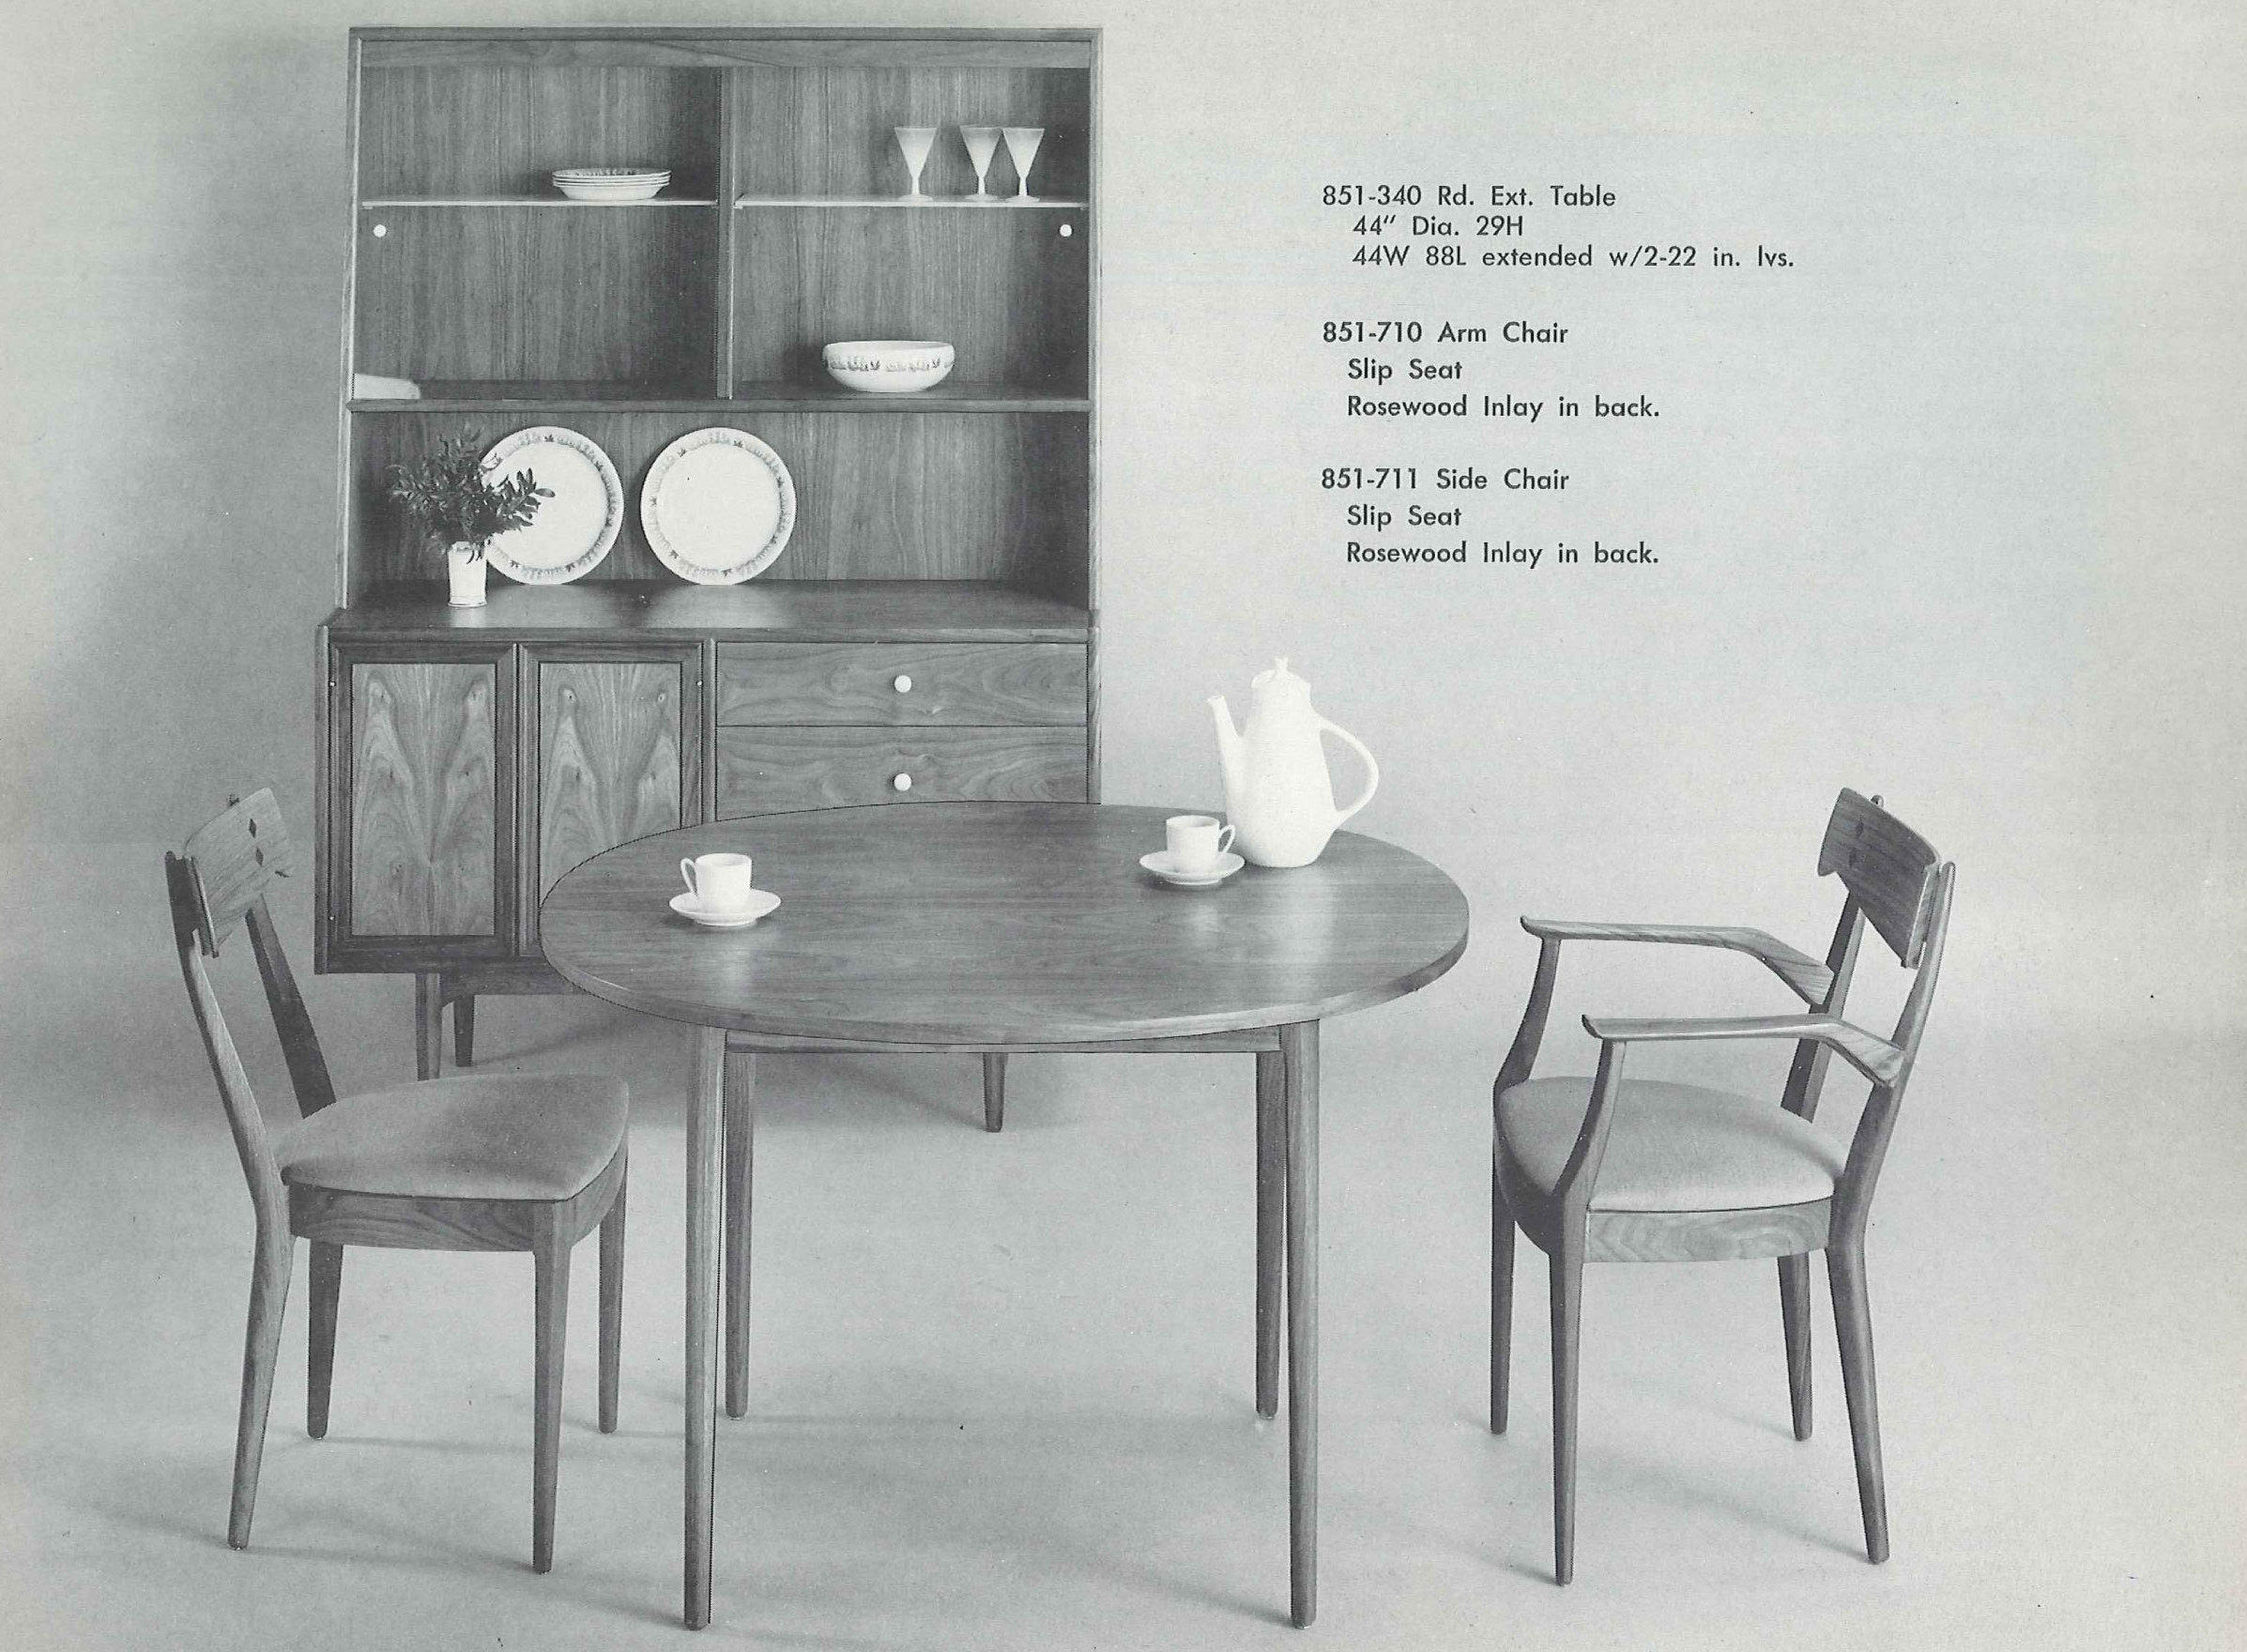 Npr S Andrea Hsu Paid 75 For Her Midcentury Modern Table And Chairs Shown Here In A 1963 Drexel Declaration Catalog She Quickly Realized It Was Steal